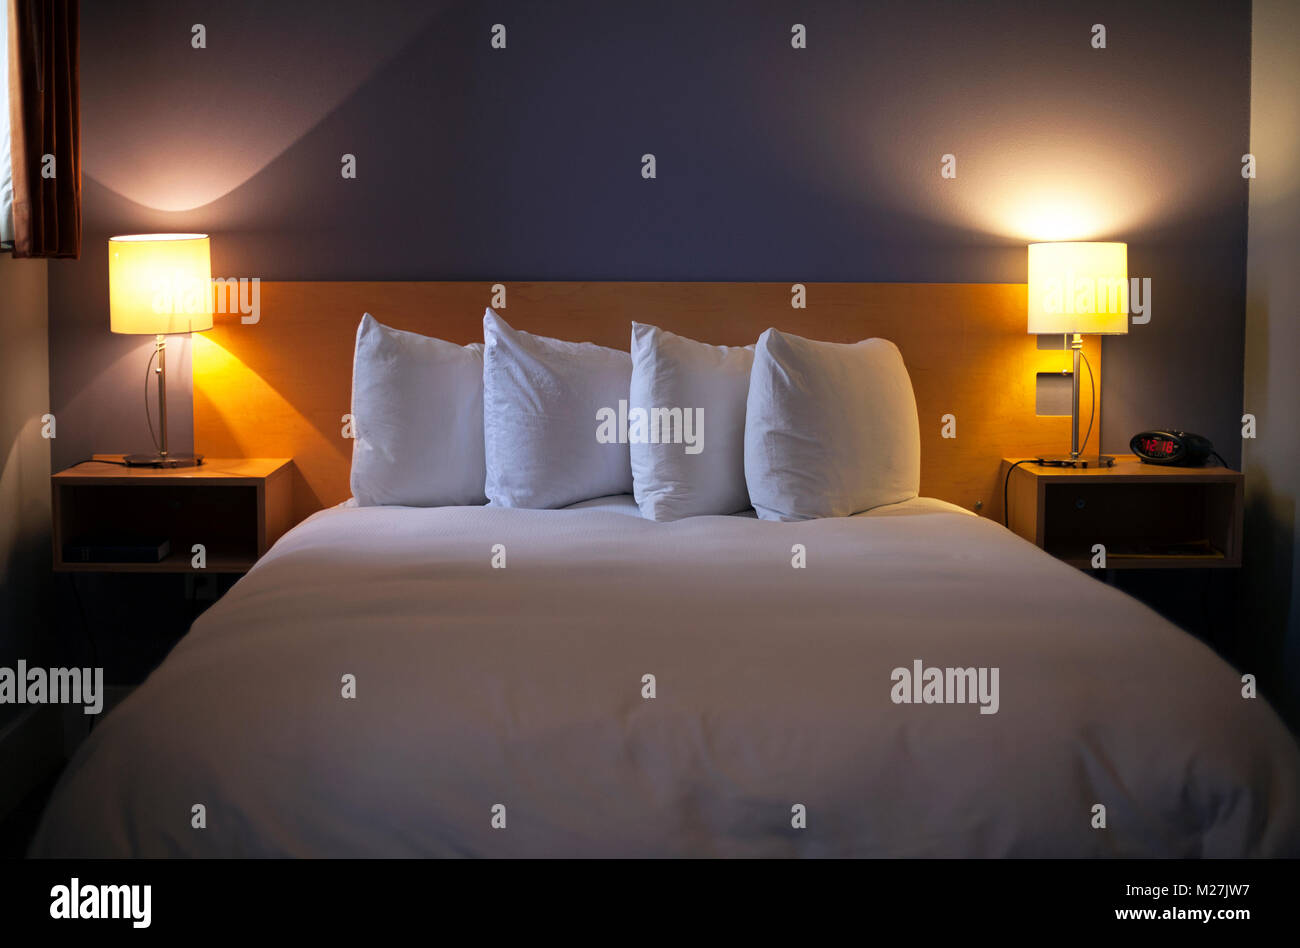 Soft light and arranged pillows are very inviting in a hotel room. - Stock Image